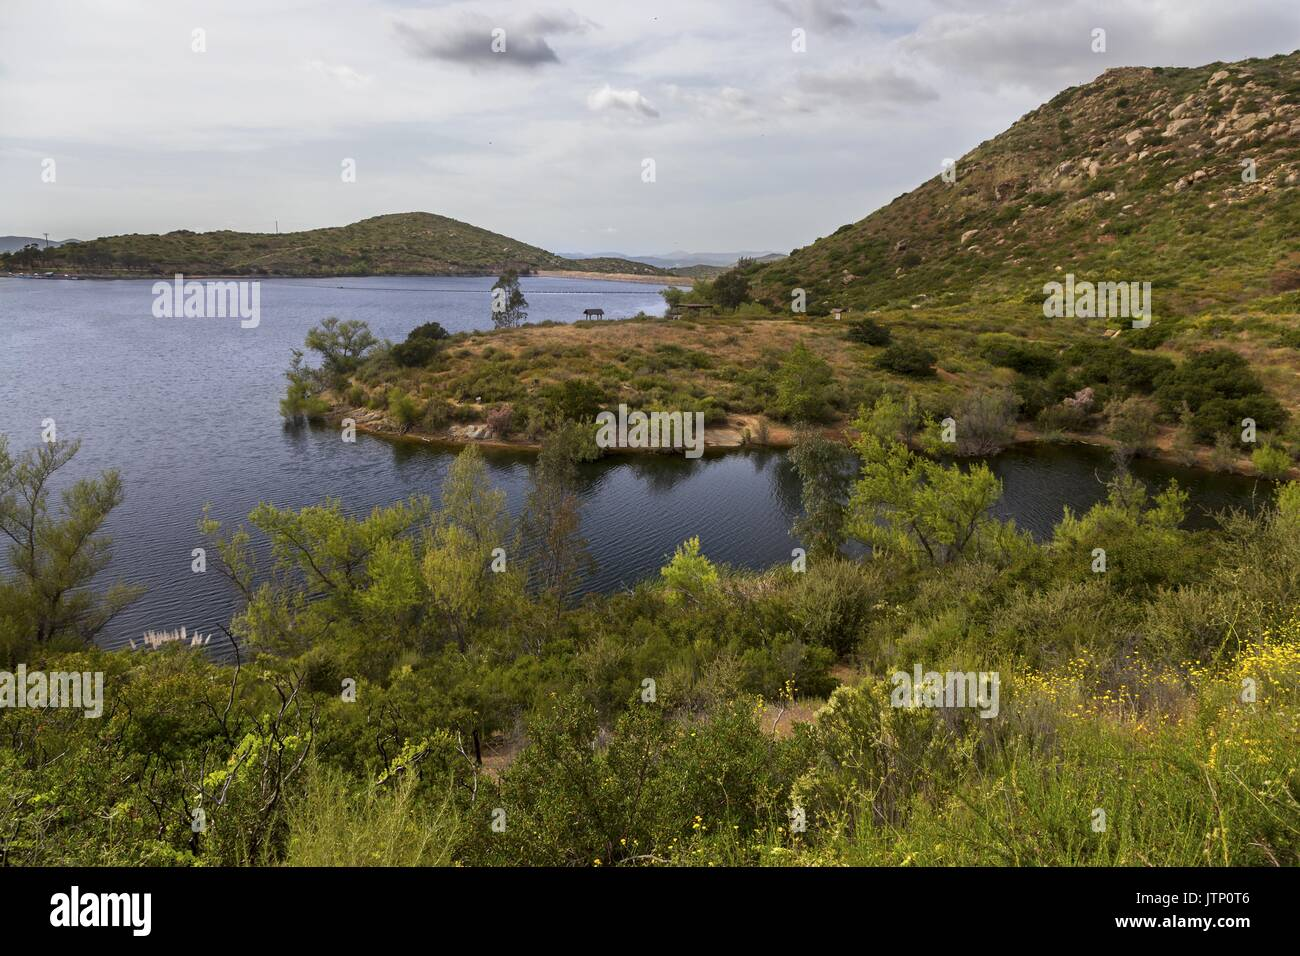 Shore of Lake Poway on Great Hiking Trail in San Diego County Inland 30 miles east of Pacific Ocean California USA - Stock Image